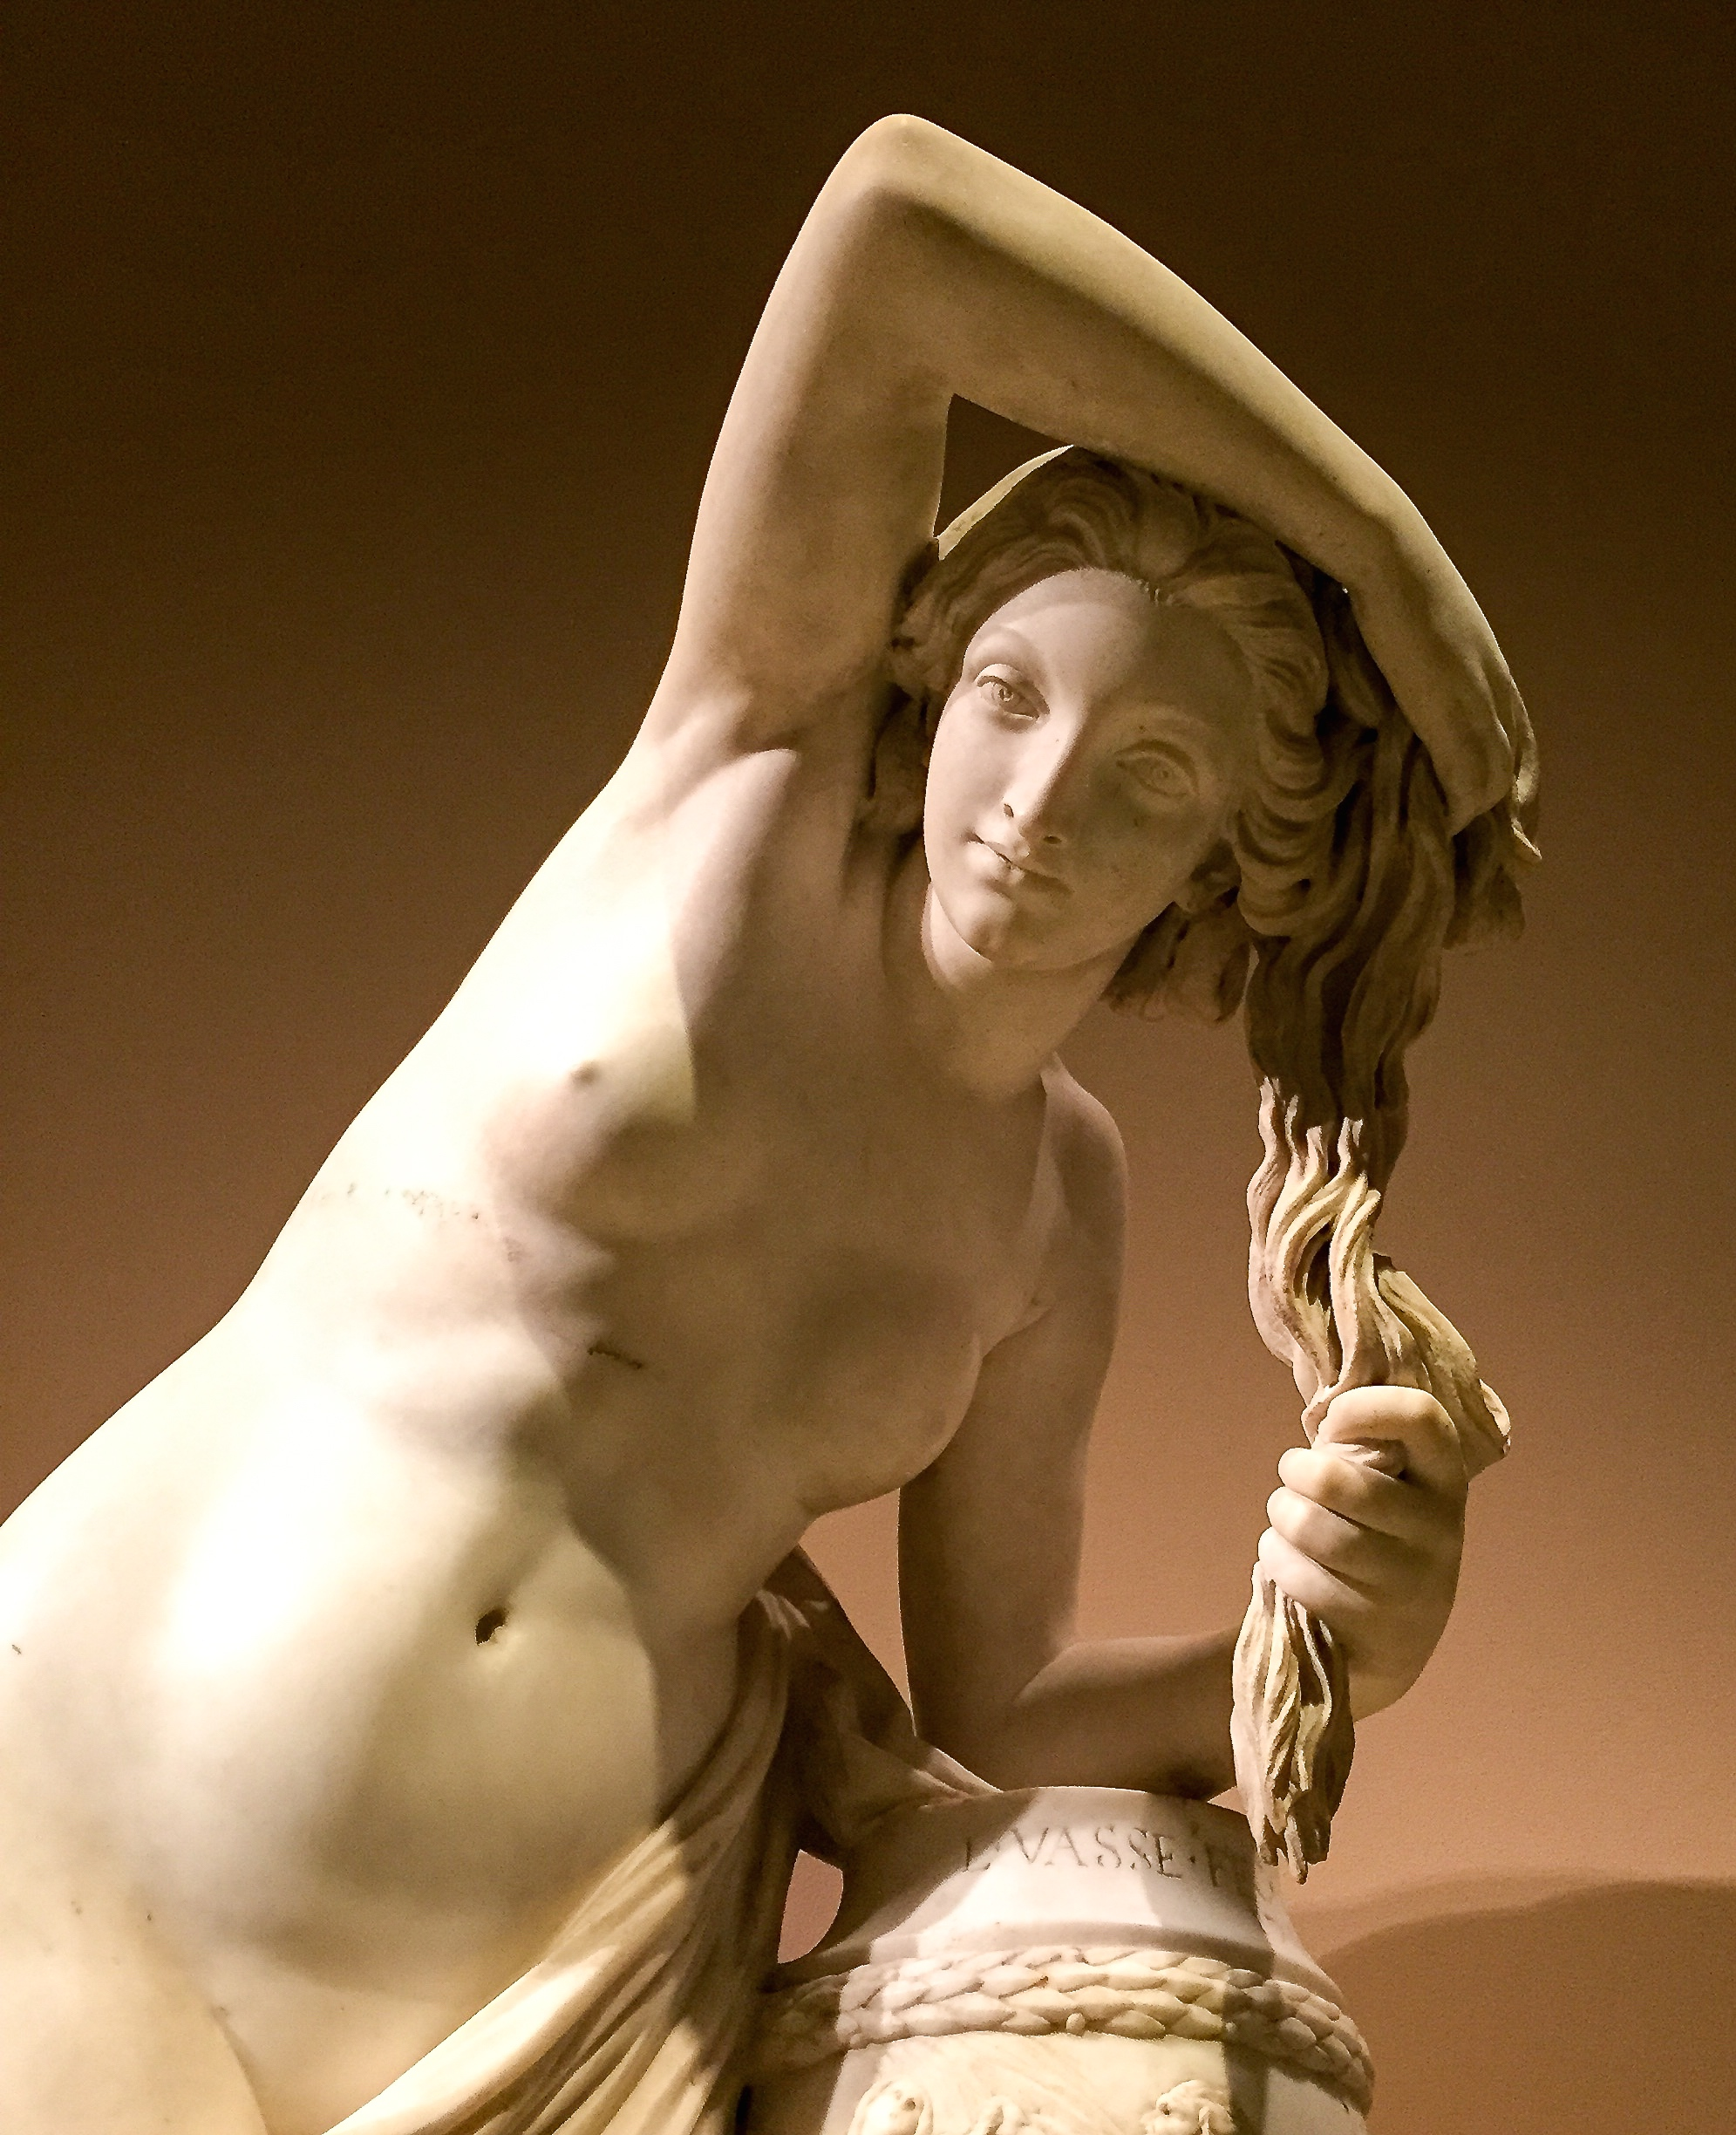 @ -Nymph of Dampierre by Vasse.jpg